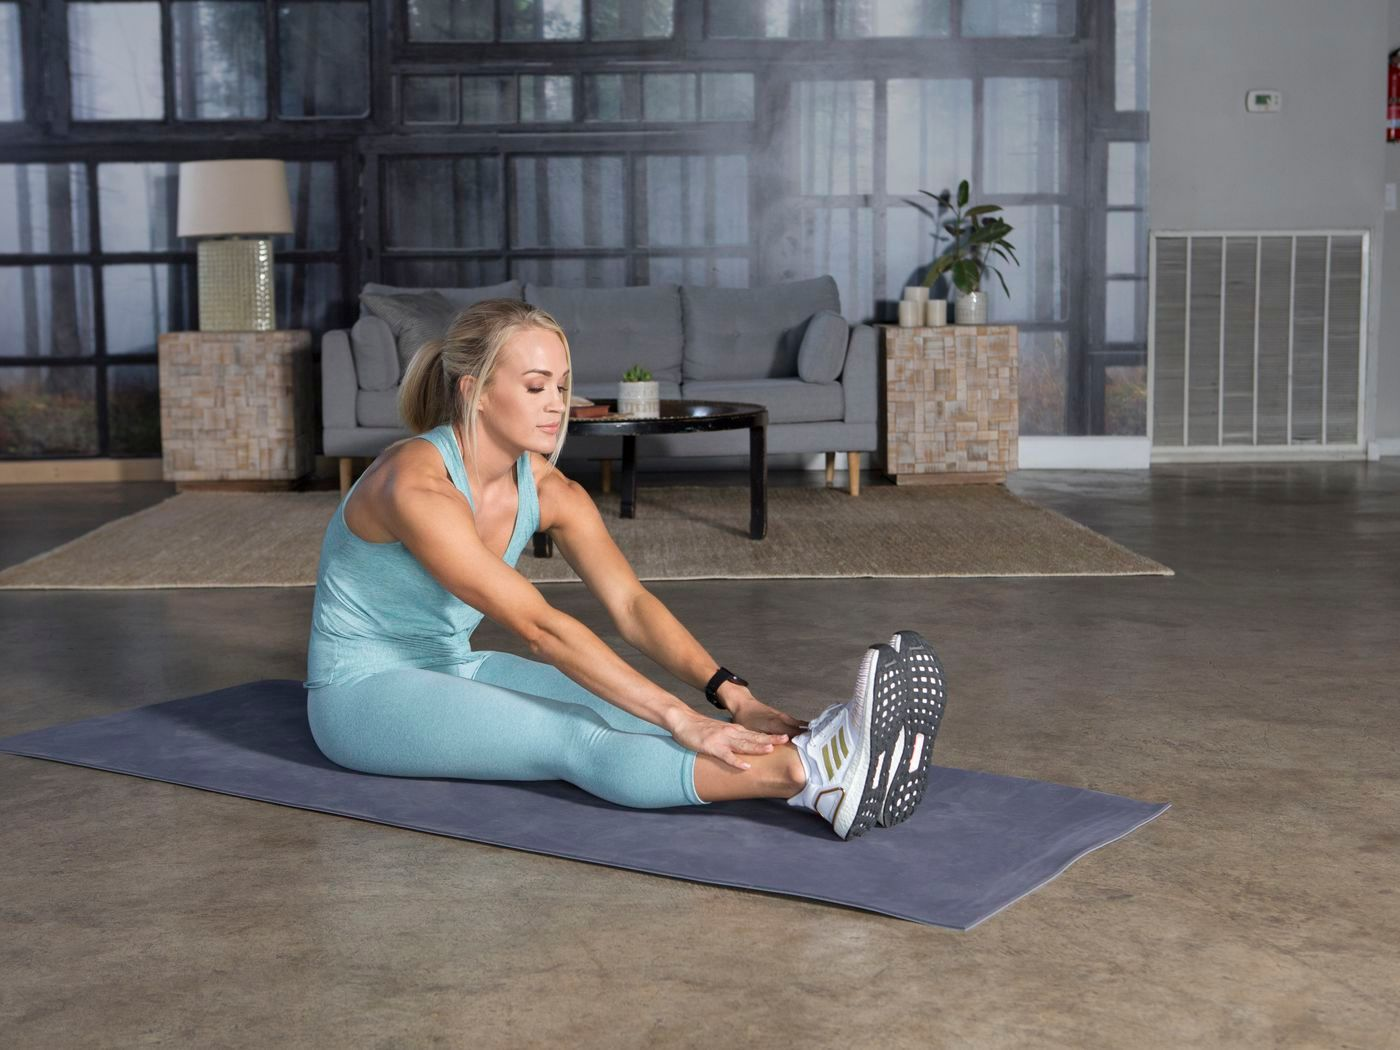 Carrie Underwood stretching on the floor